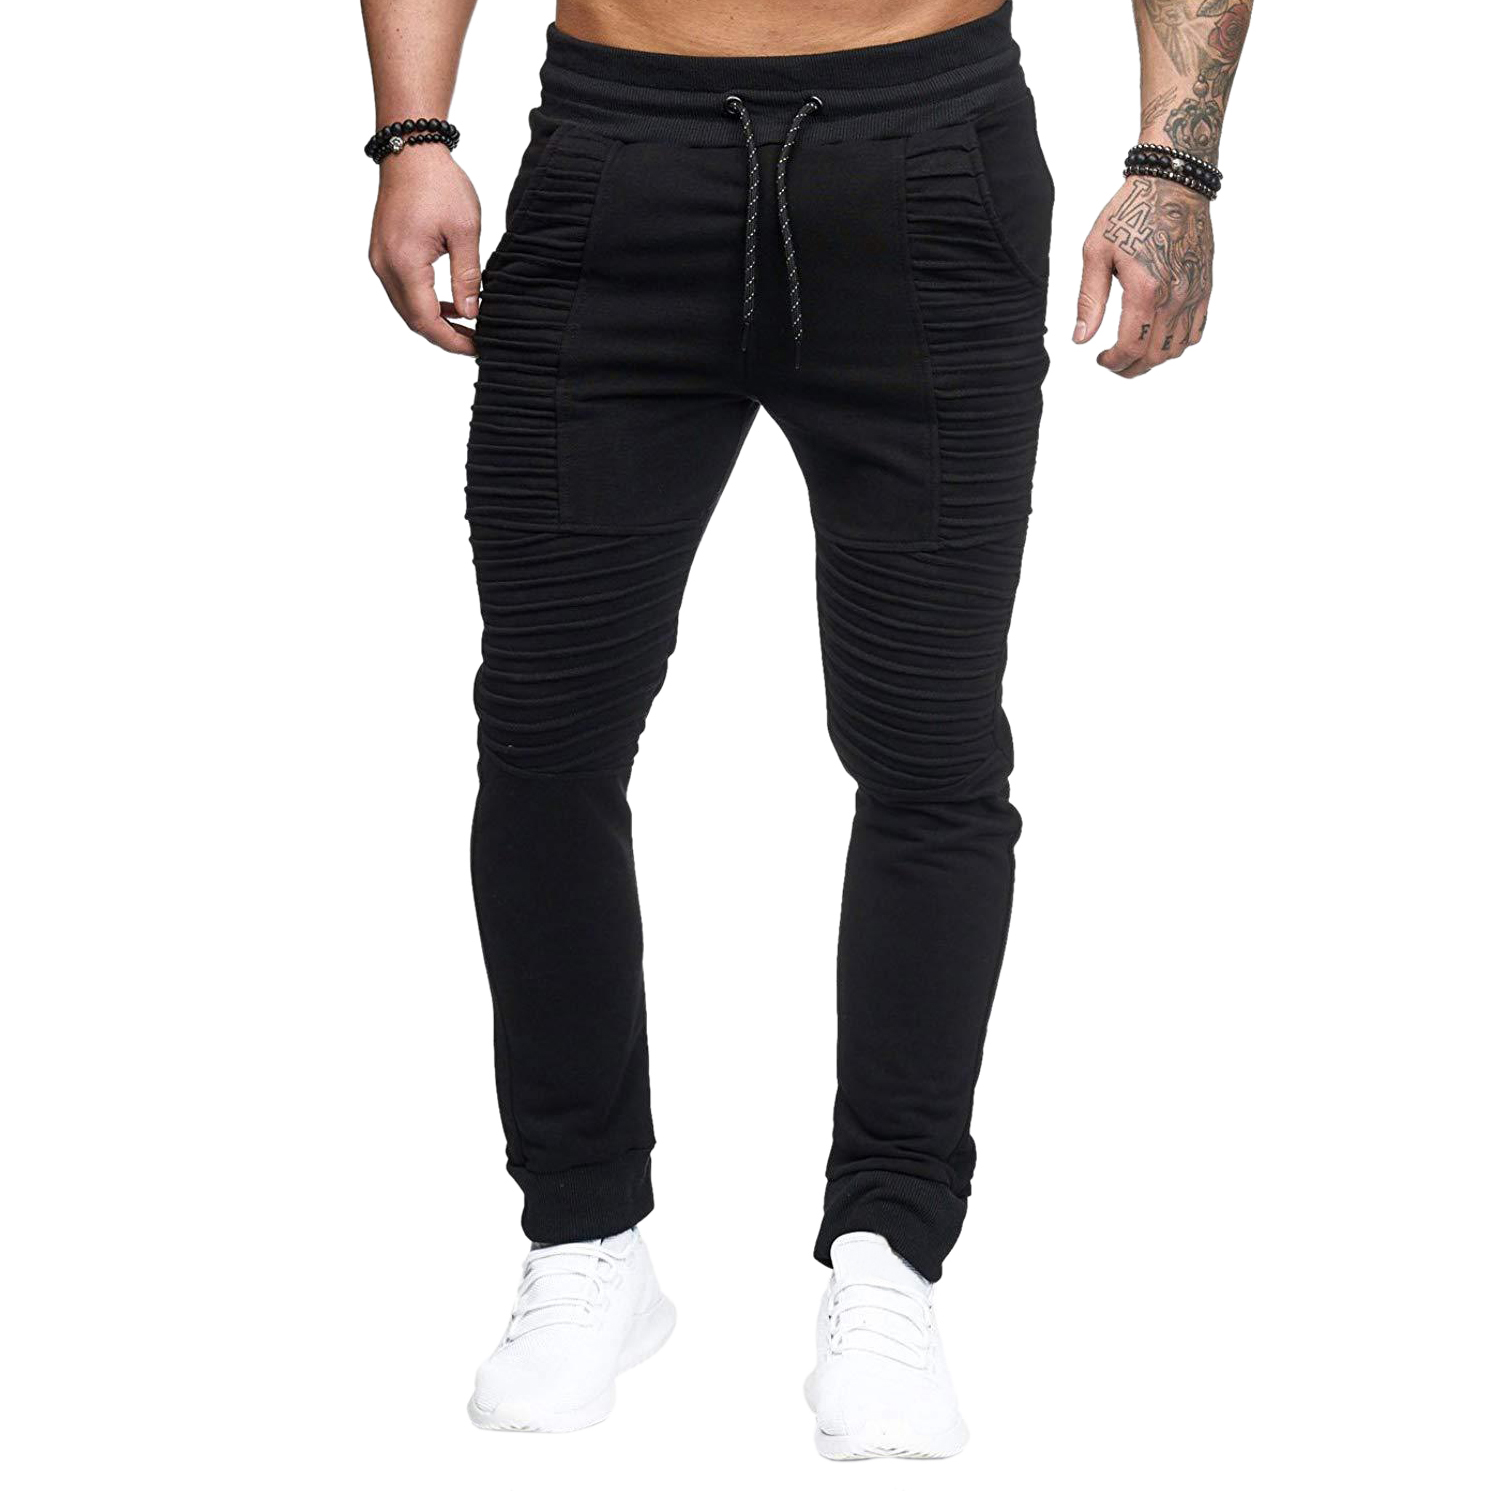 Trousers Pants Stretch Pleated Feet Elastic-Waist Fitness Hip-Hop Slim Striped Men Fashion